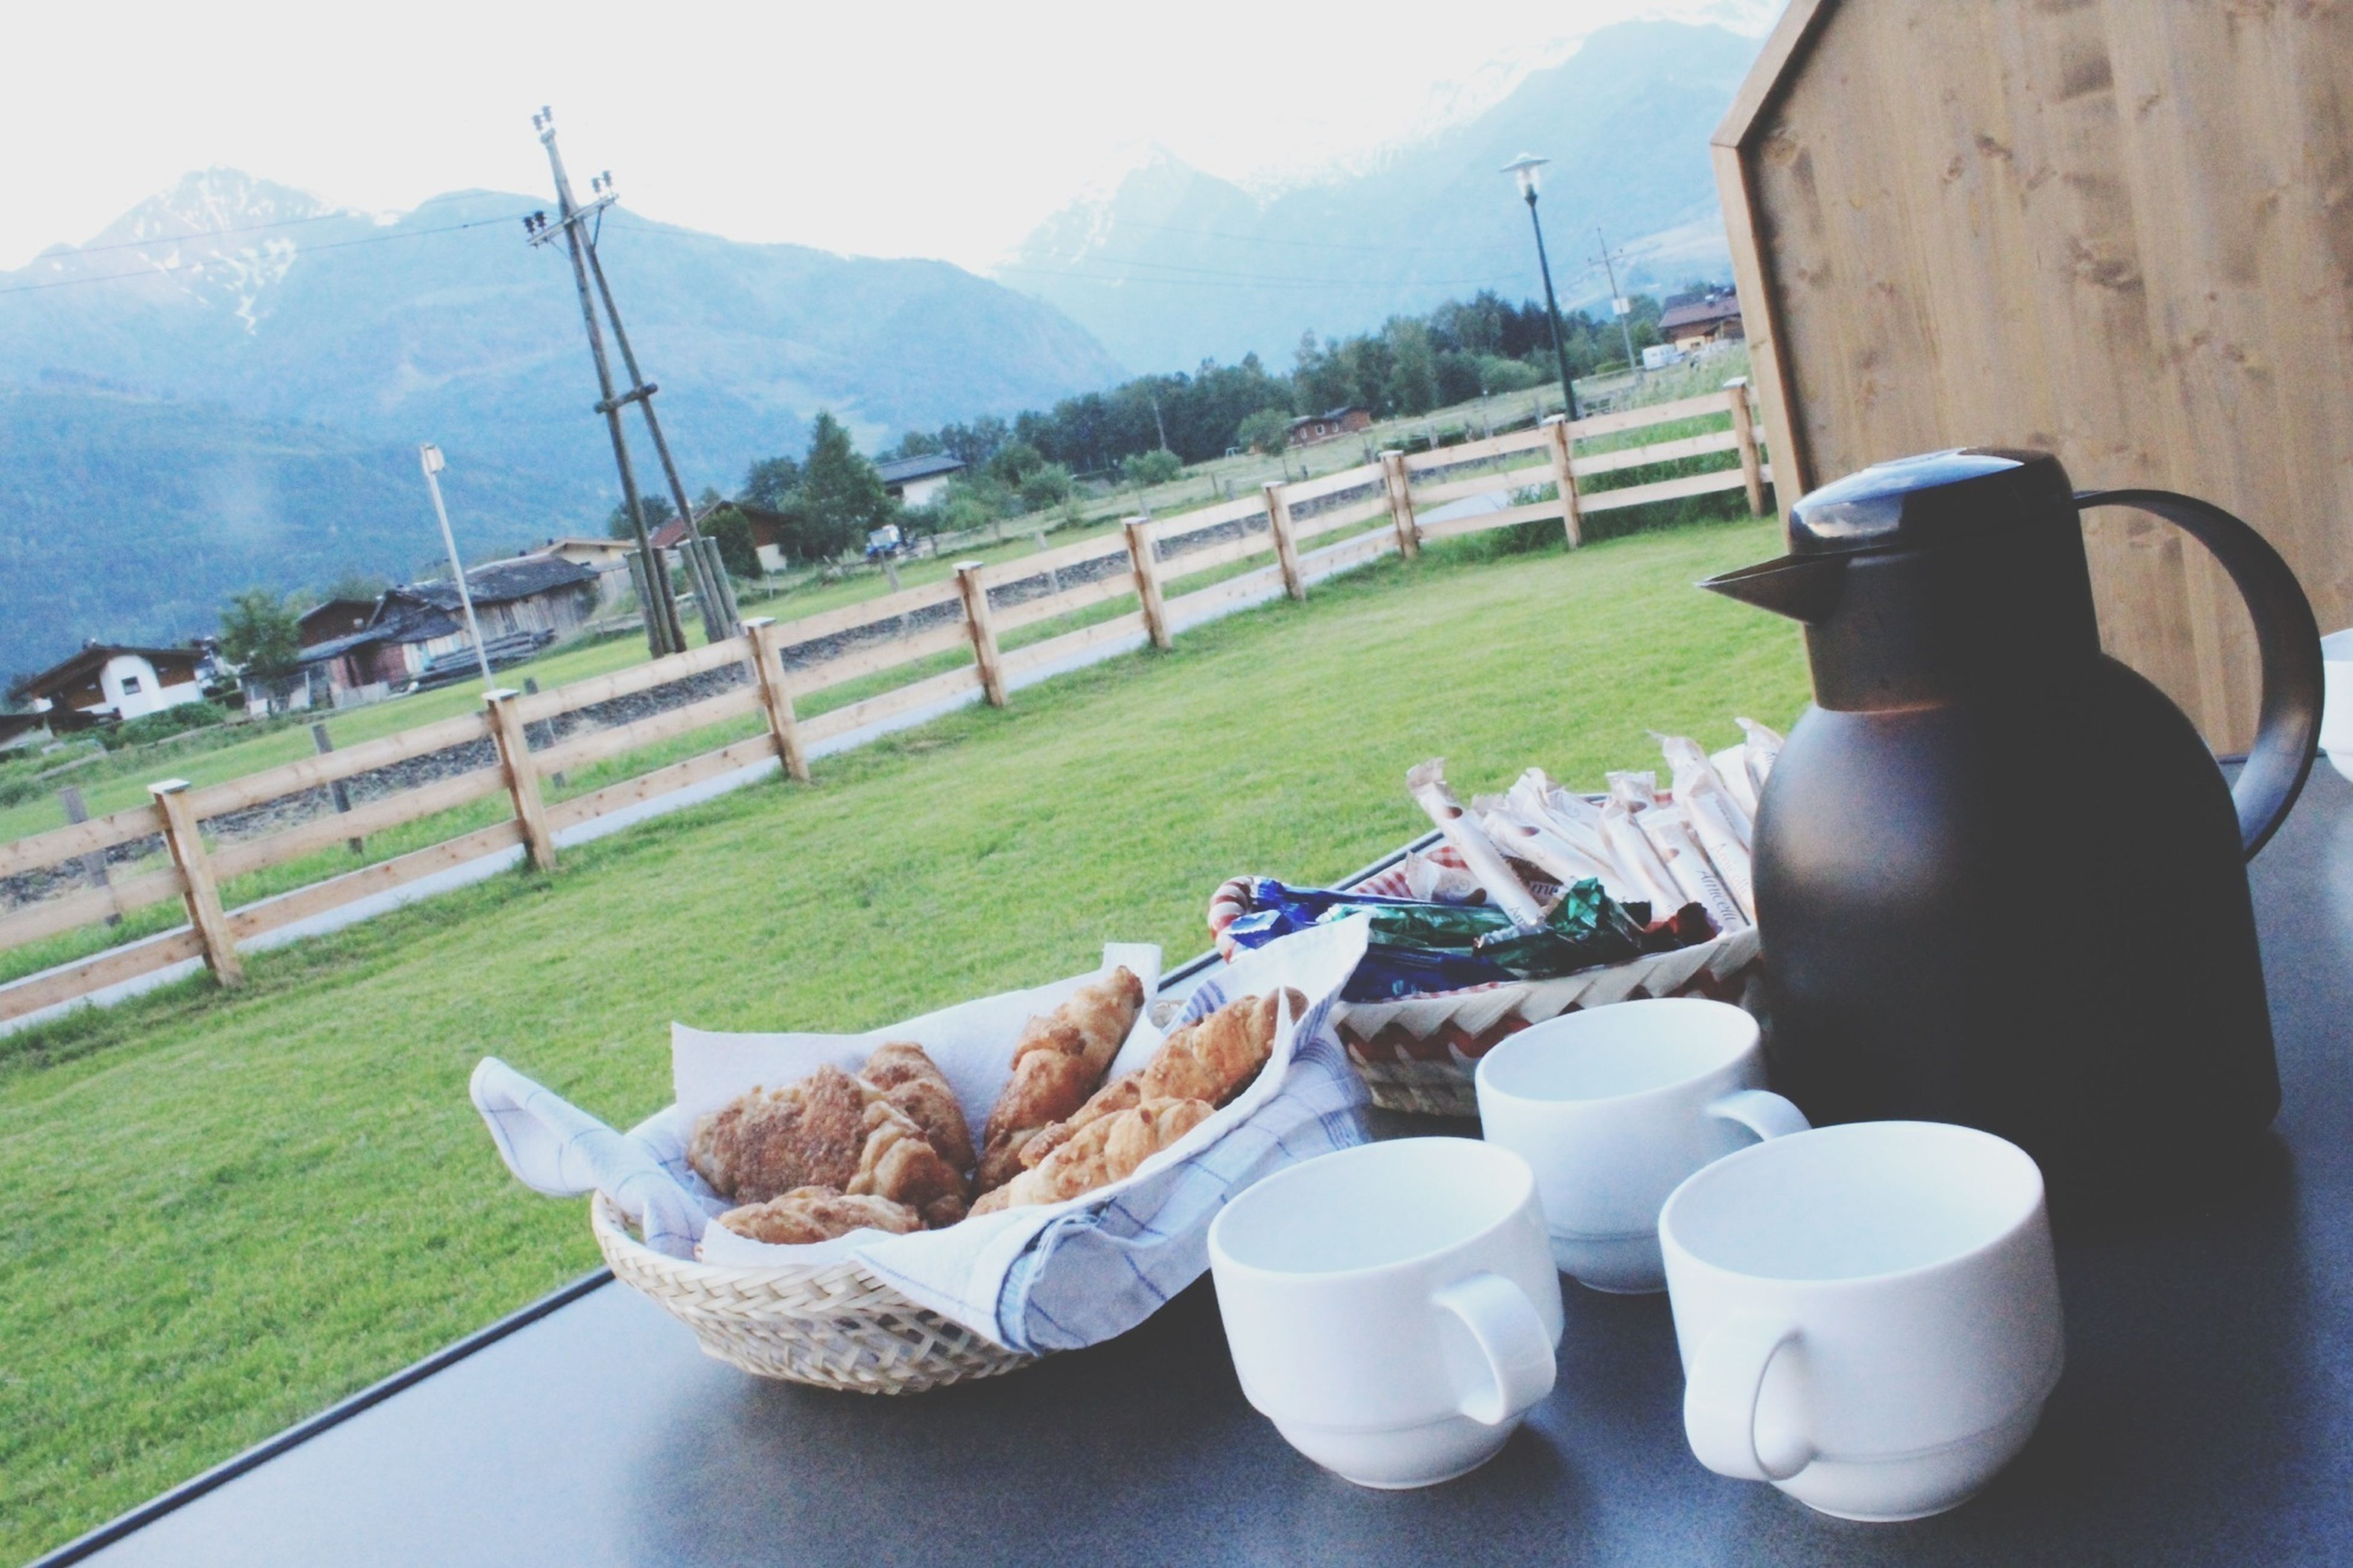 mountain, mountain range, grass, landscape, food and drink, sky, tranquility, table, tranquil scene, nature, day, scenics, sunlight, green color, outdoors, food, beauty in nature, field, tree, relaxation